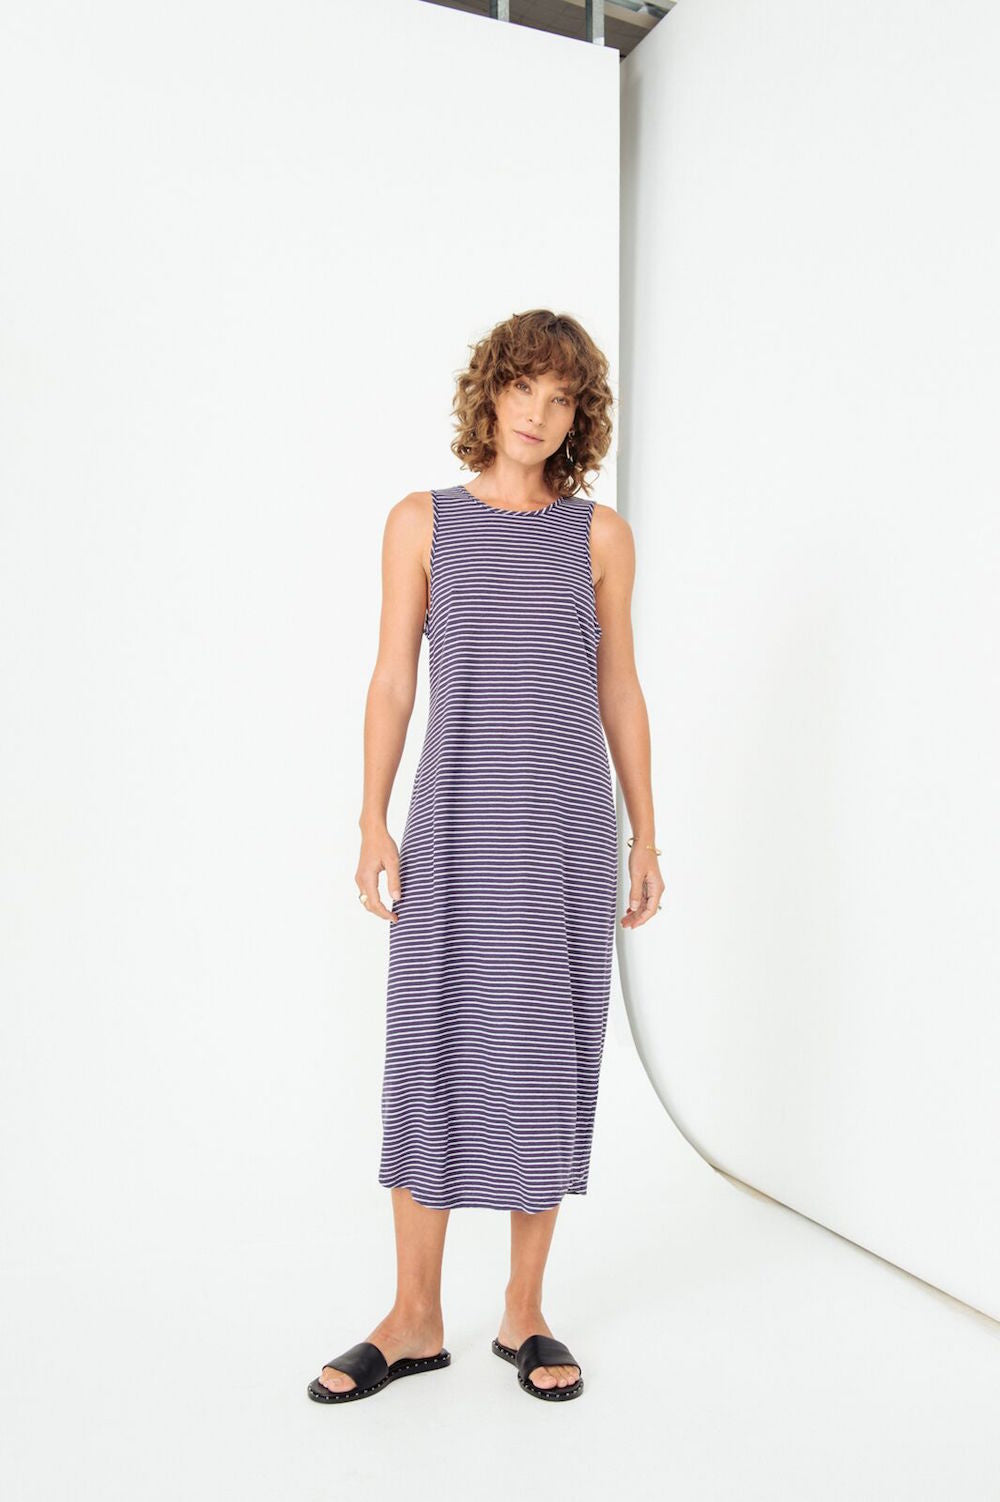 THIRD FORM EMBRACE TIE TANK DRESS